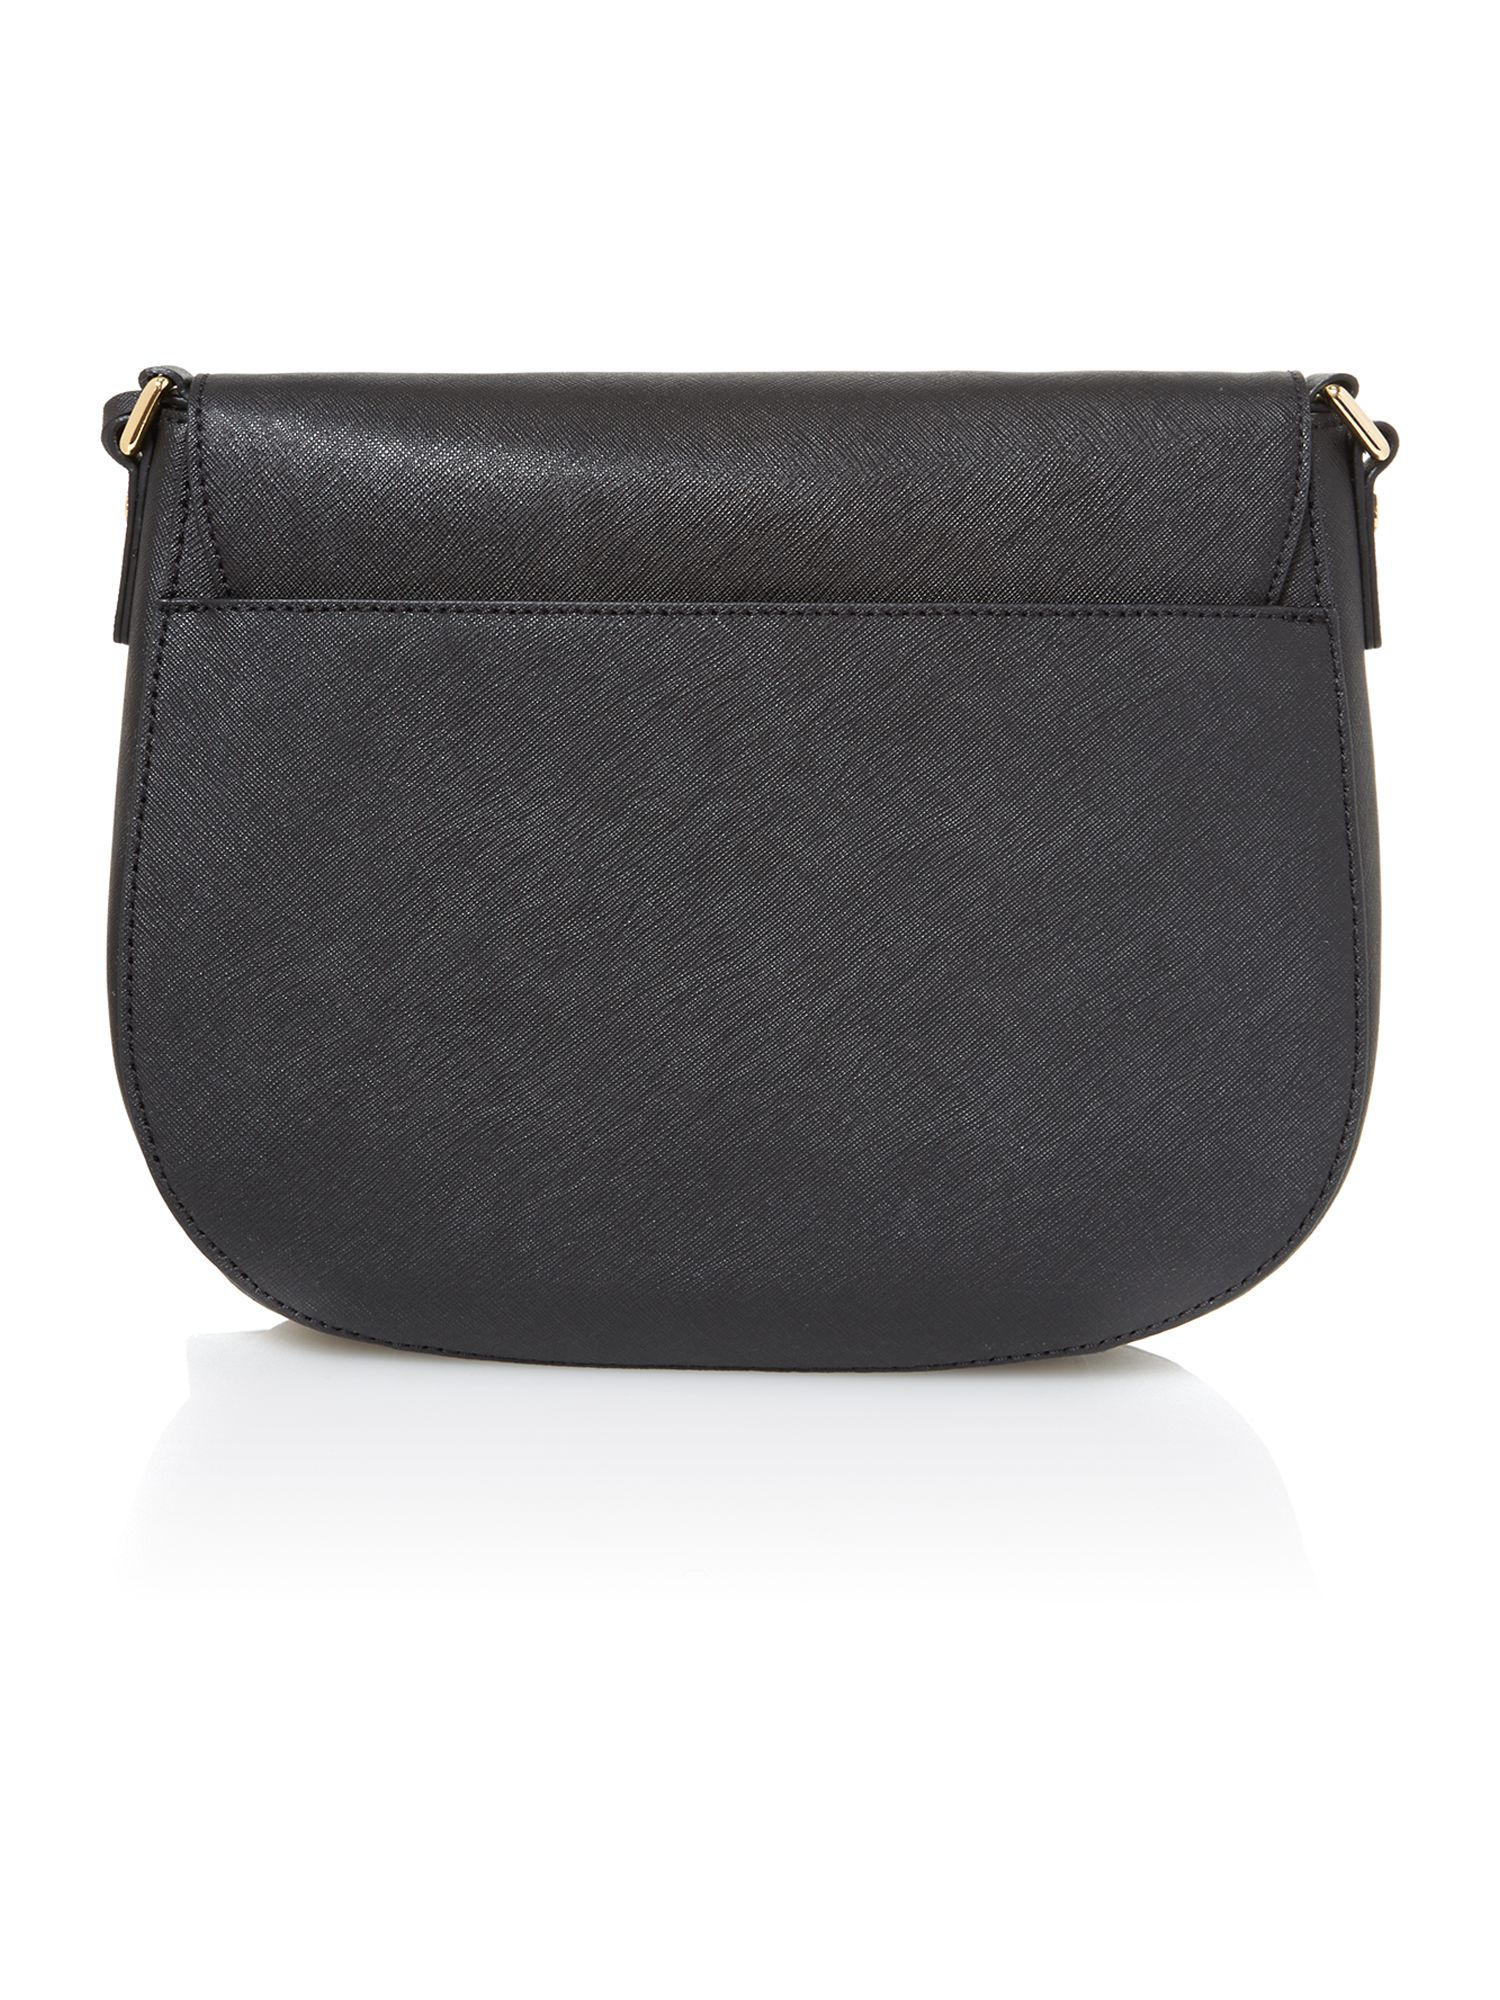 Hamilton black flapover cross body